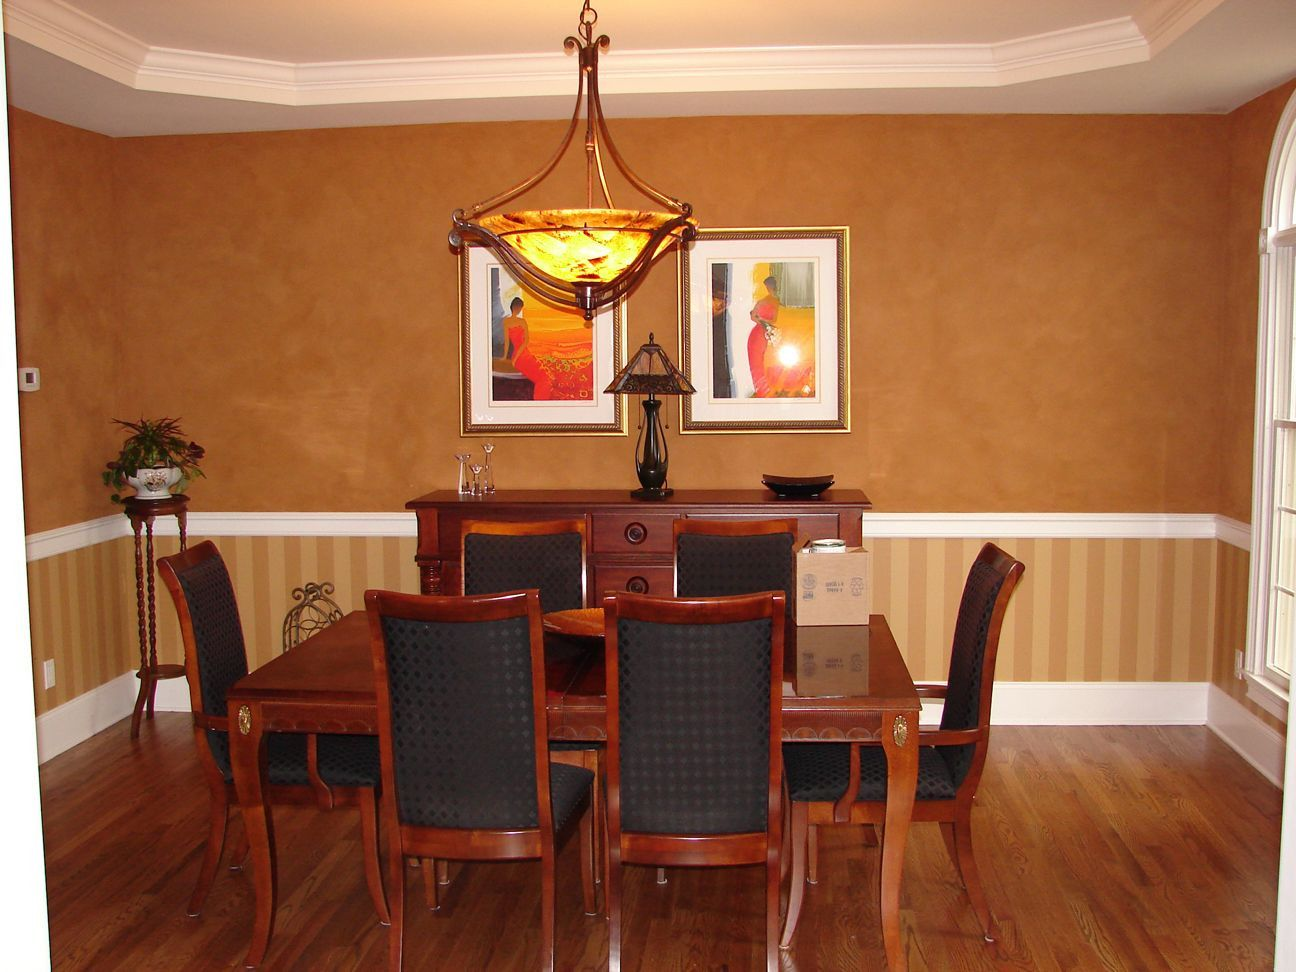 20 Best Painting Dining Room With Chair Rail 2019 Dining Room Colors Dining Room Paint Colors Dining Room Paint